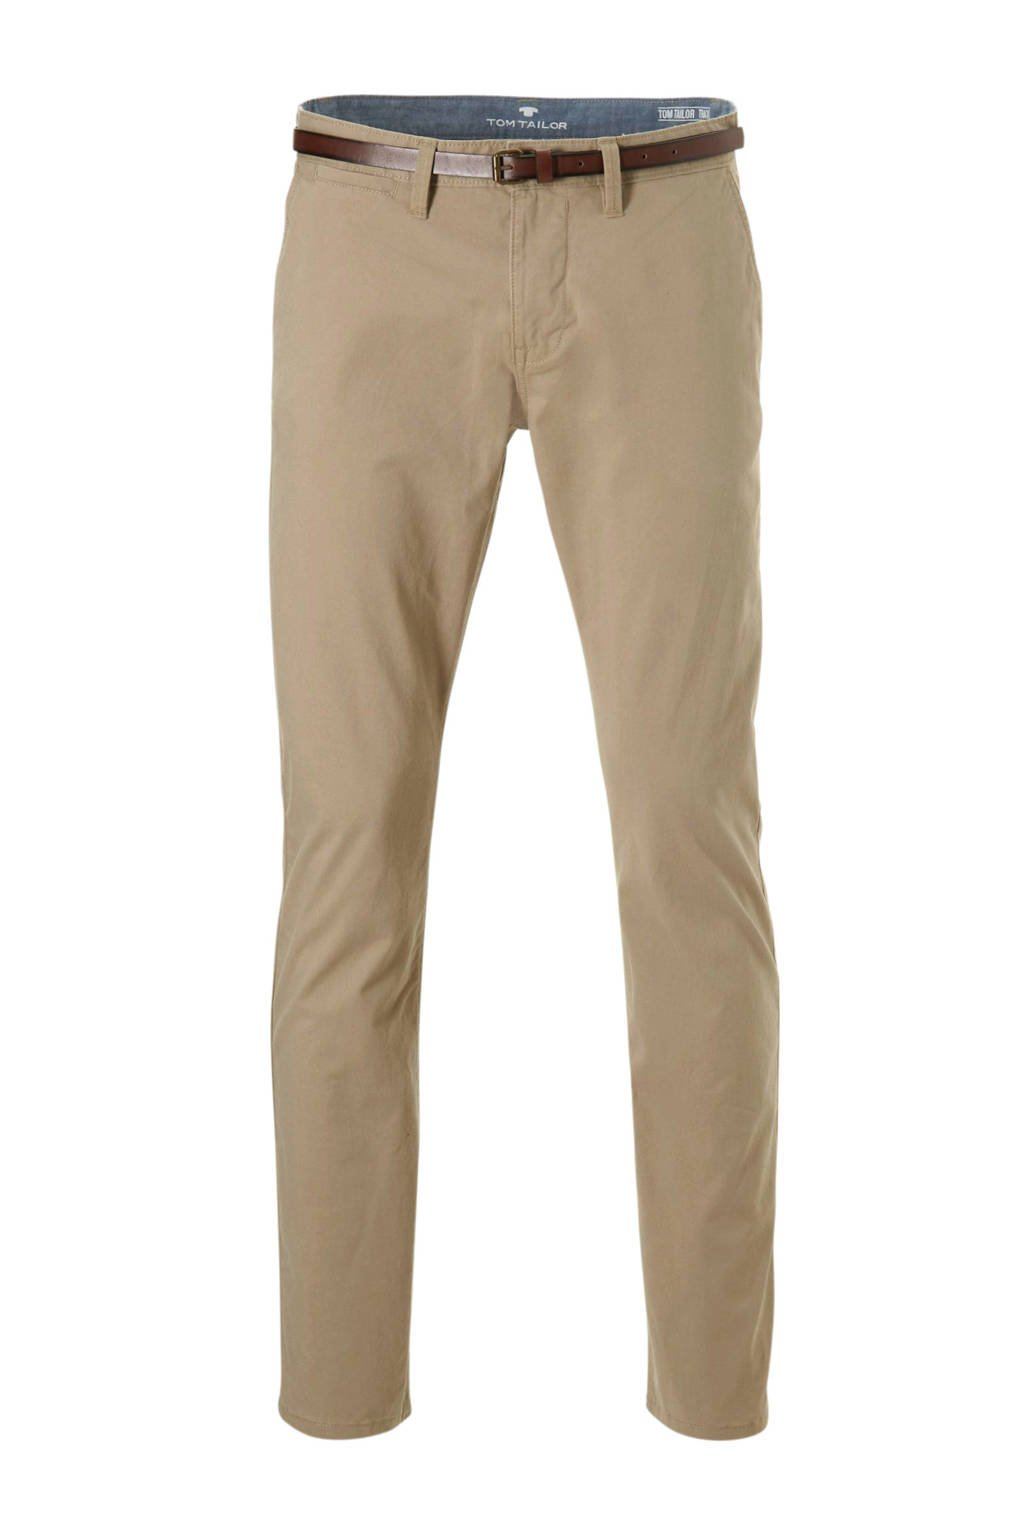 Tom Tailor chino, Beige